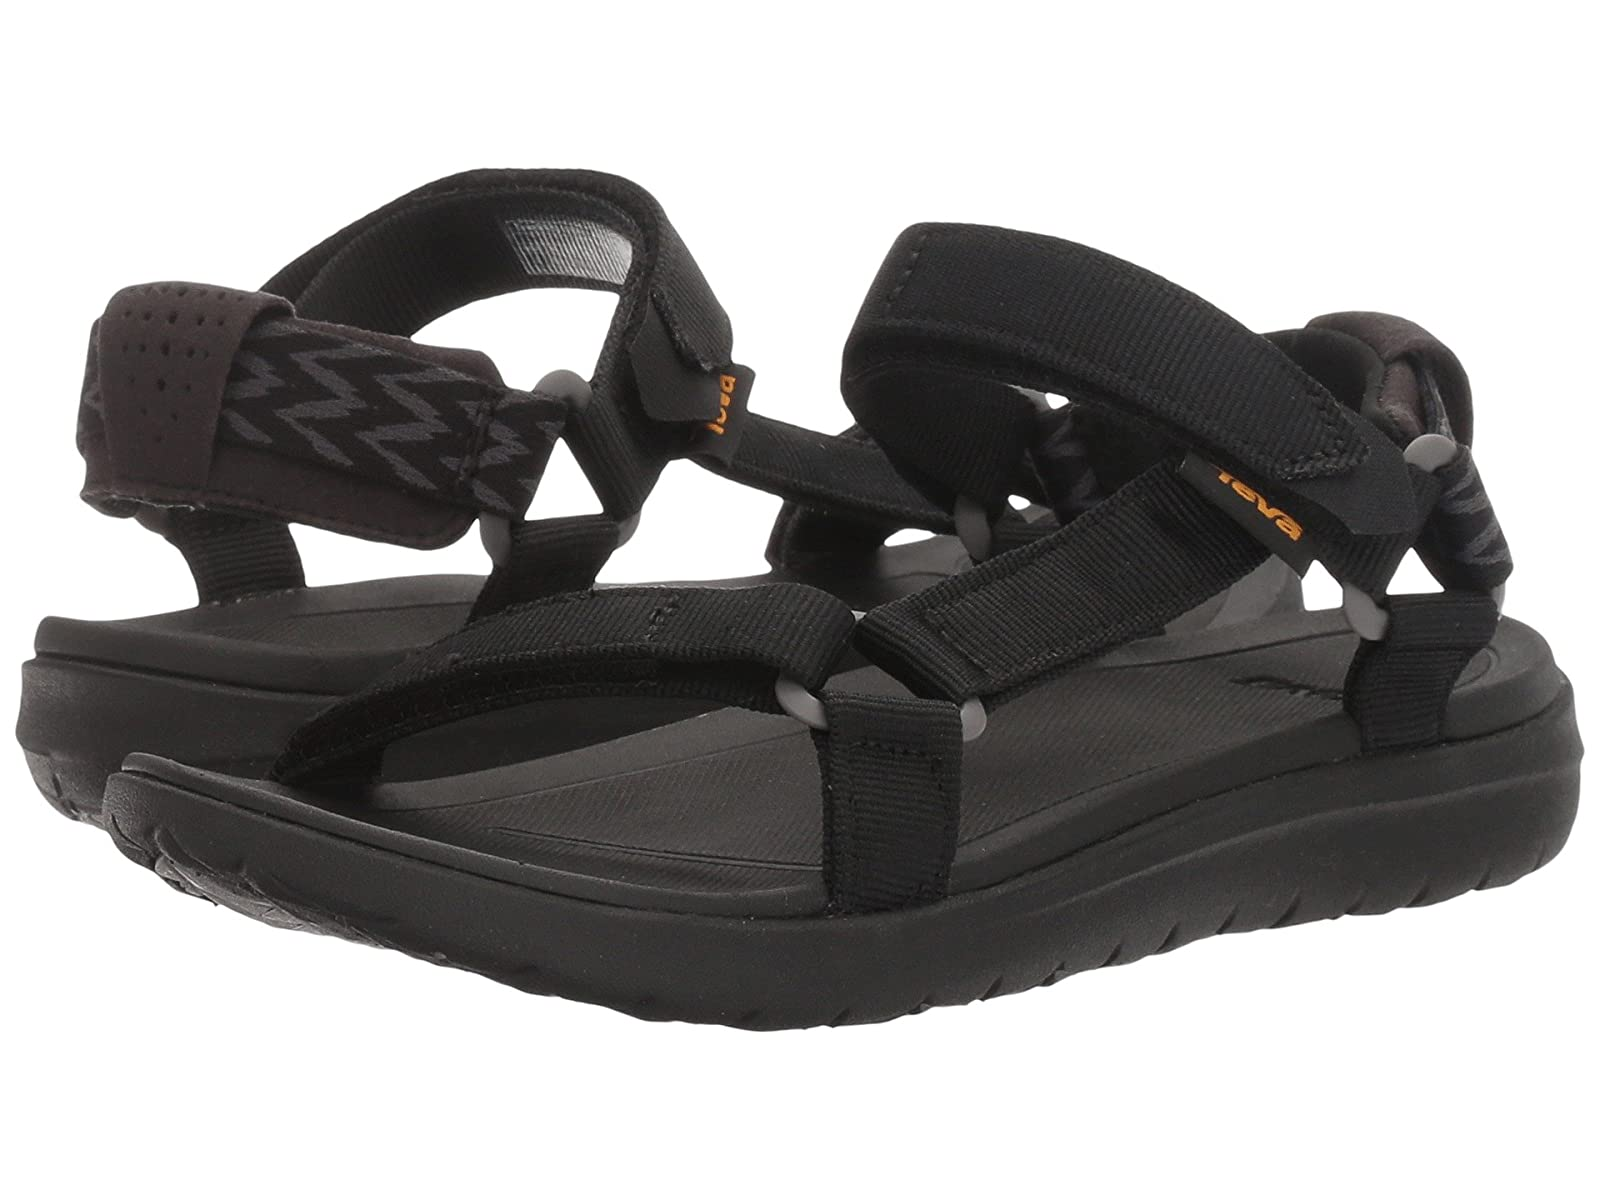 Teva Sanborn UniversalAtmospheric grades have affordable shoes